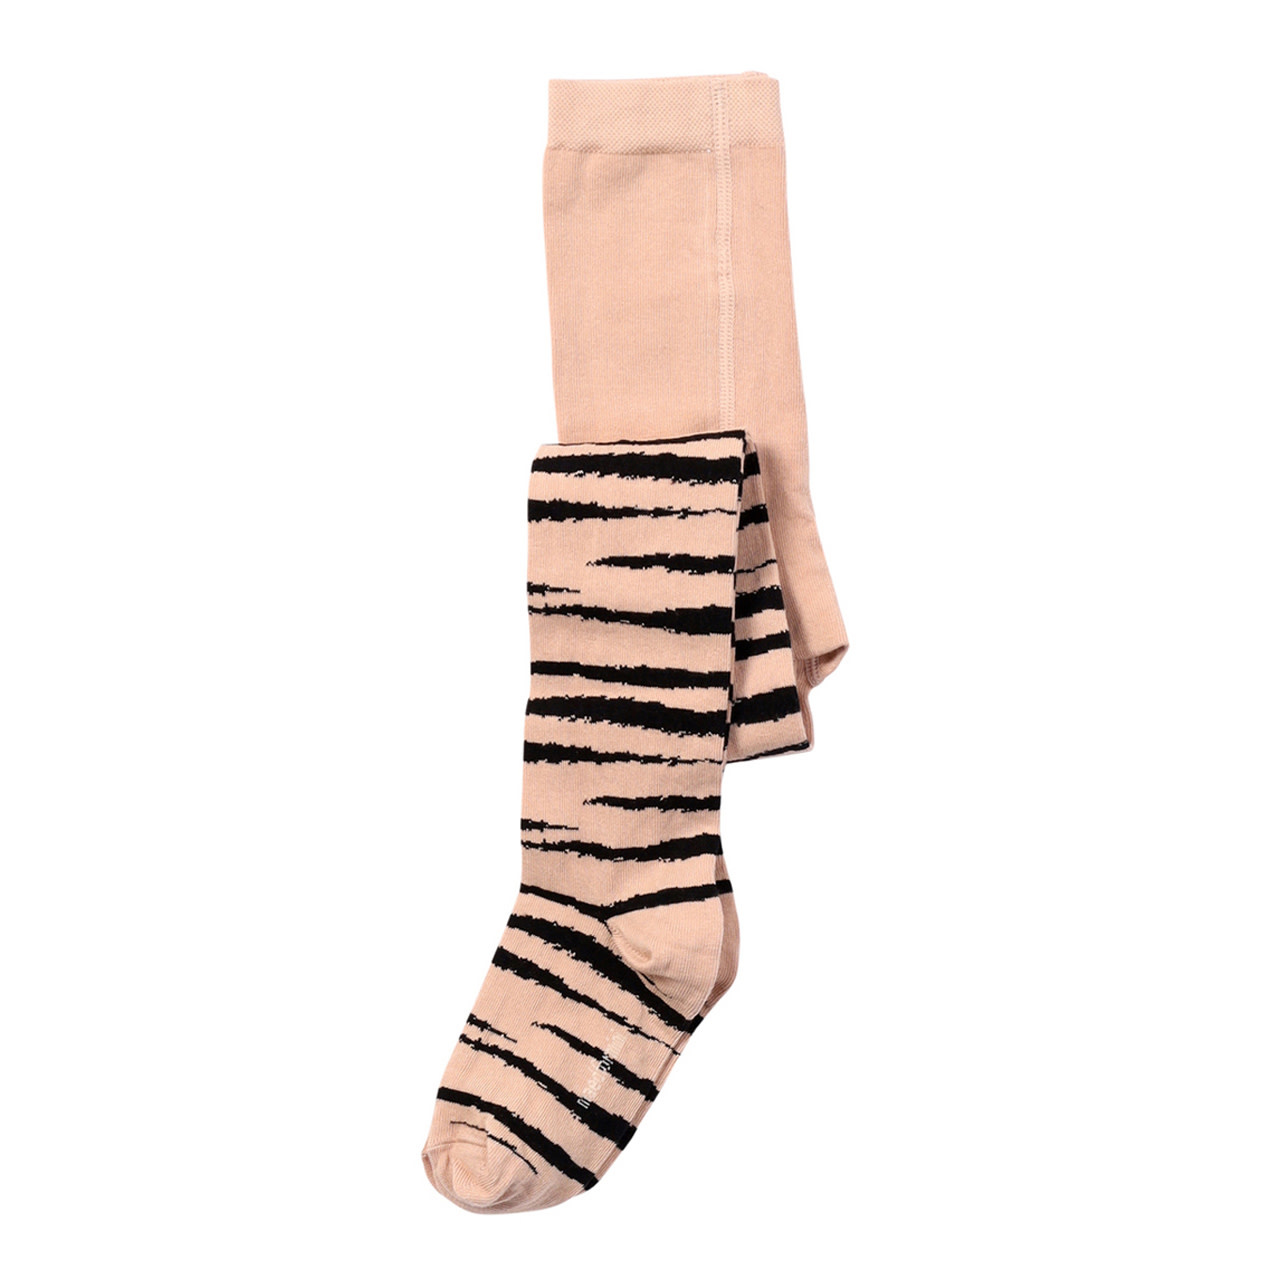 Maed For mini Maed for mini - Elastic tights pink tiger aop